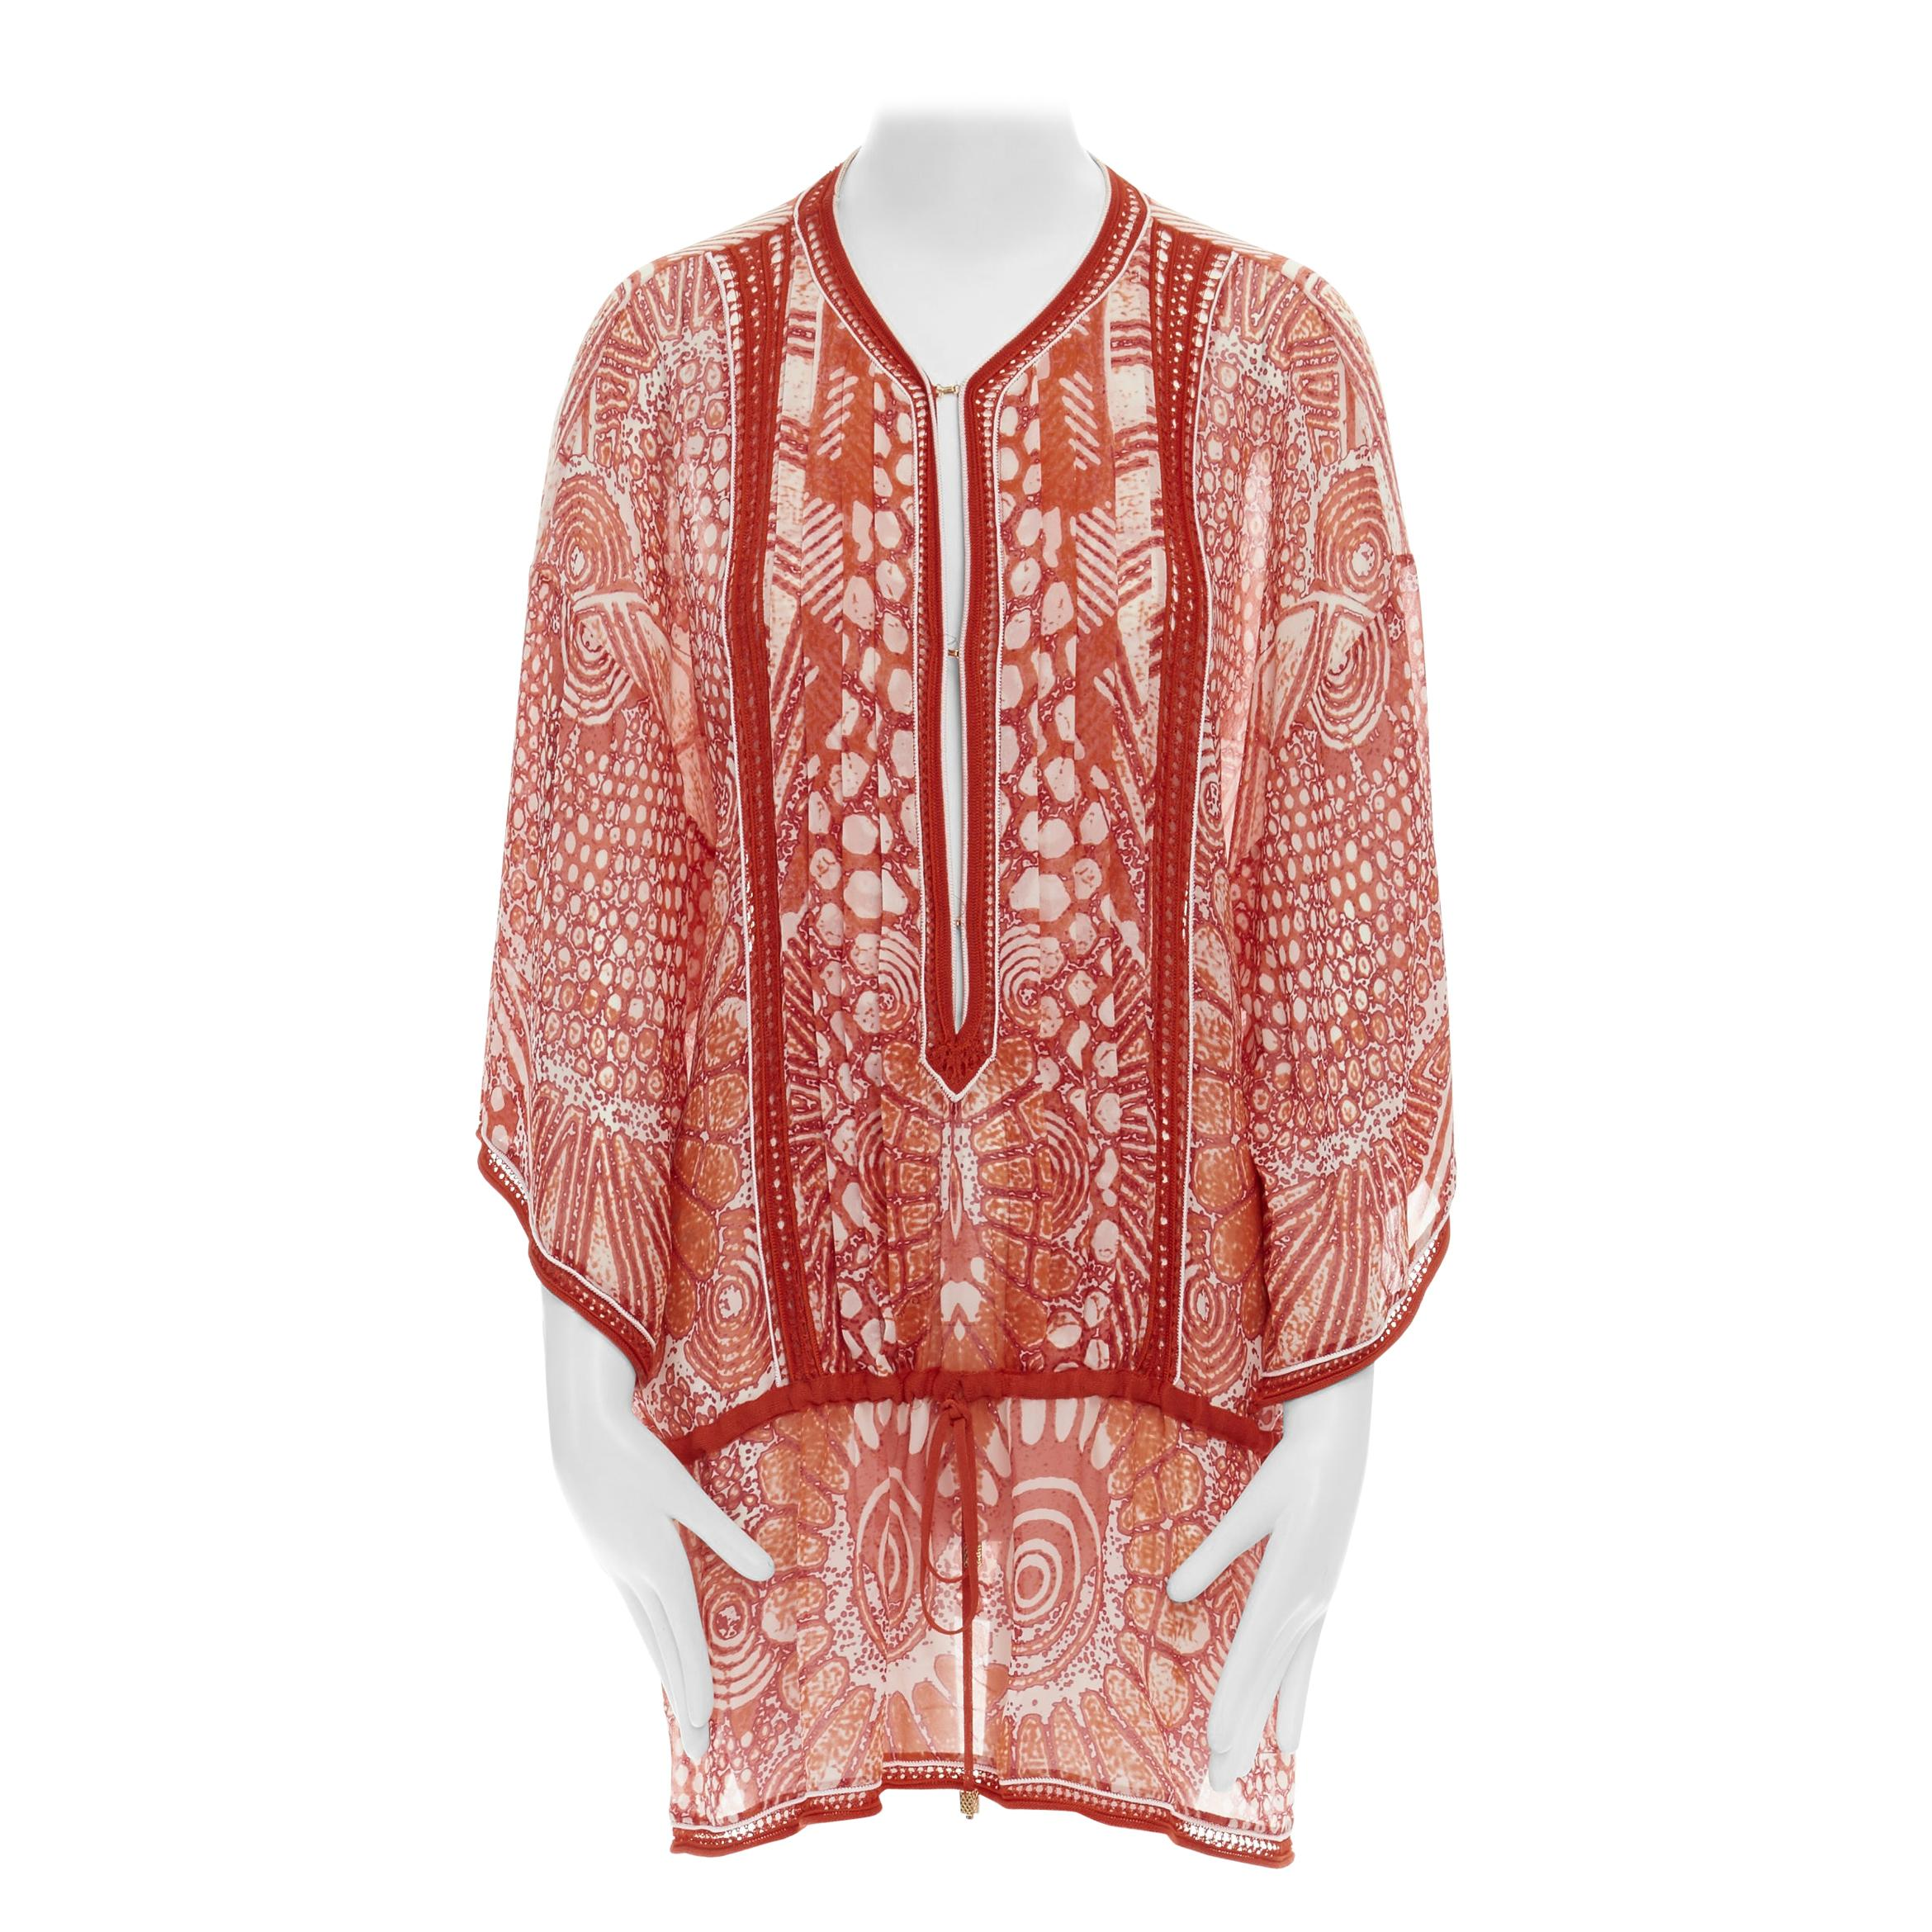 ROBERTO CAVALLI 100% silk red tropical floral crochet seam poncho cover up top S